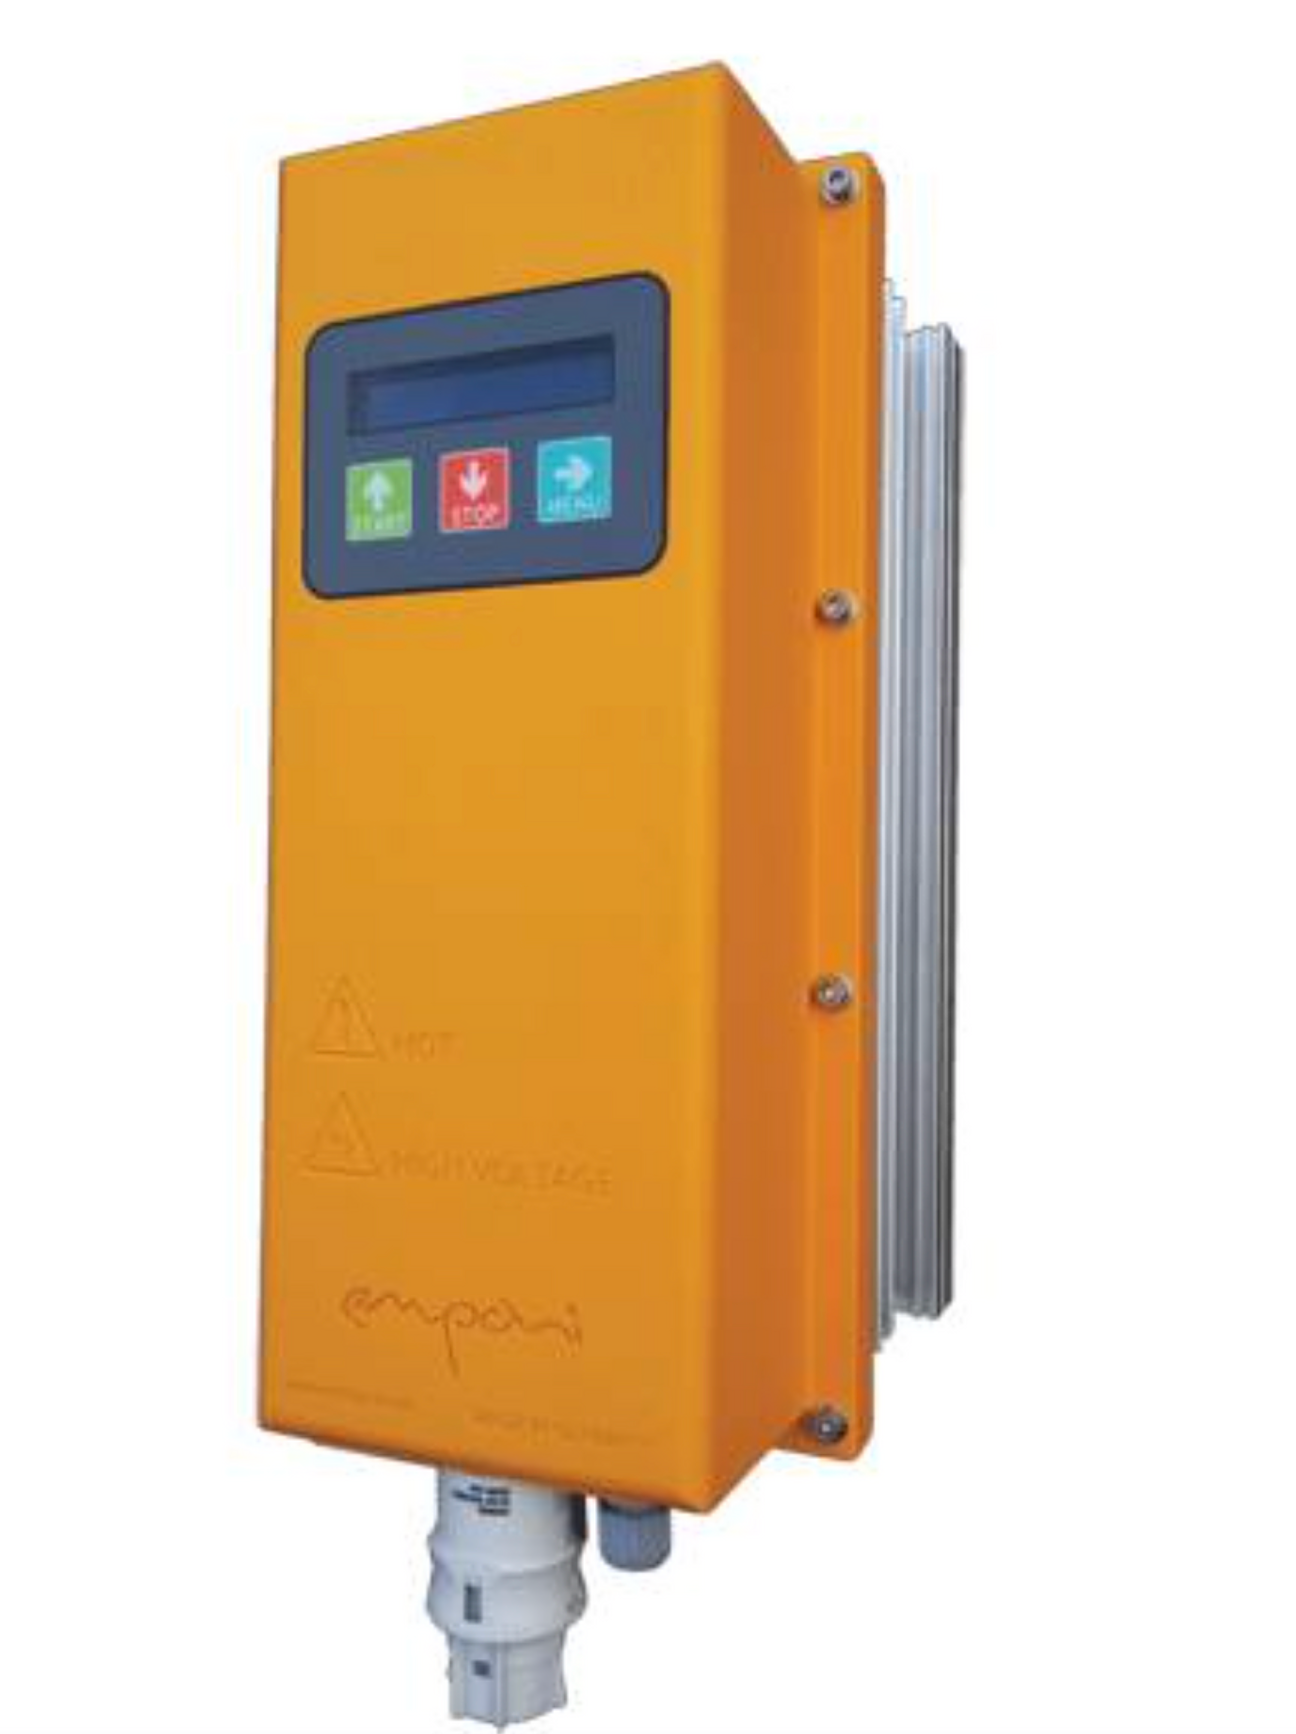 Pump Inverter / Solar Direct Drive SDD 5.5kW-850V